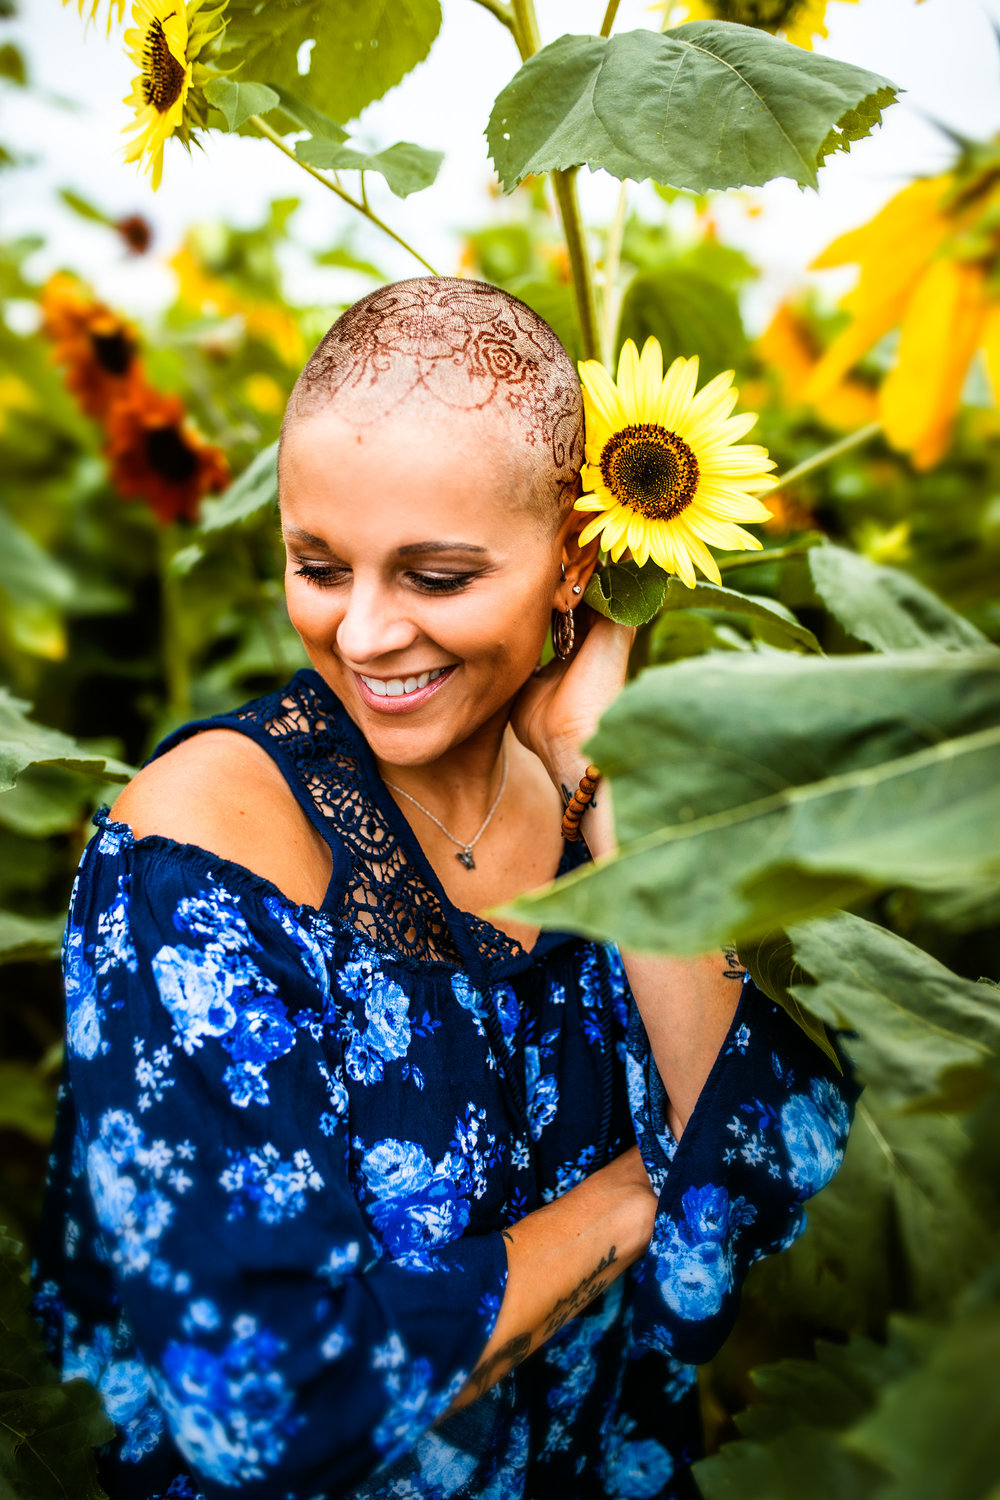 Steph_Sunflowers-3.jpg